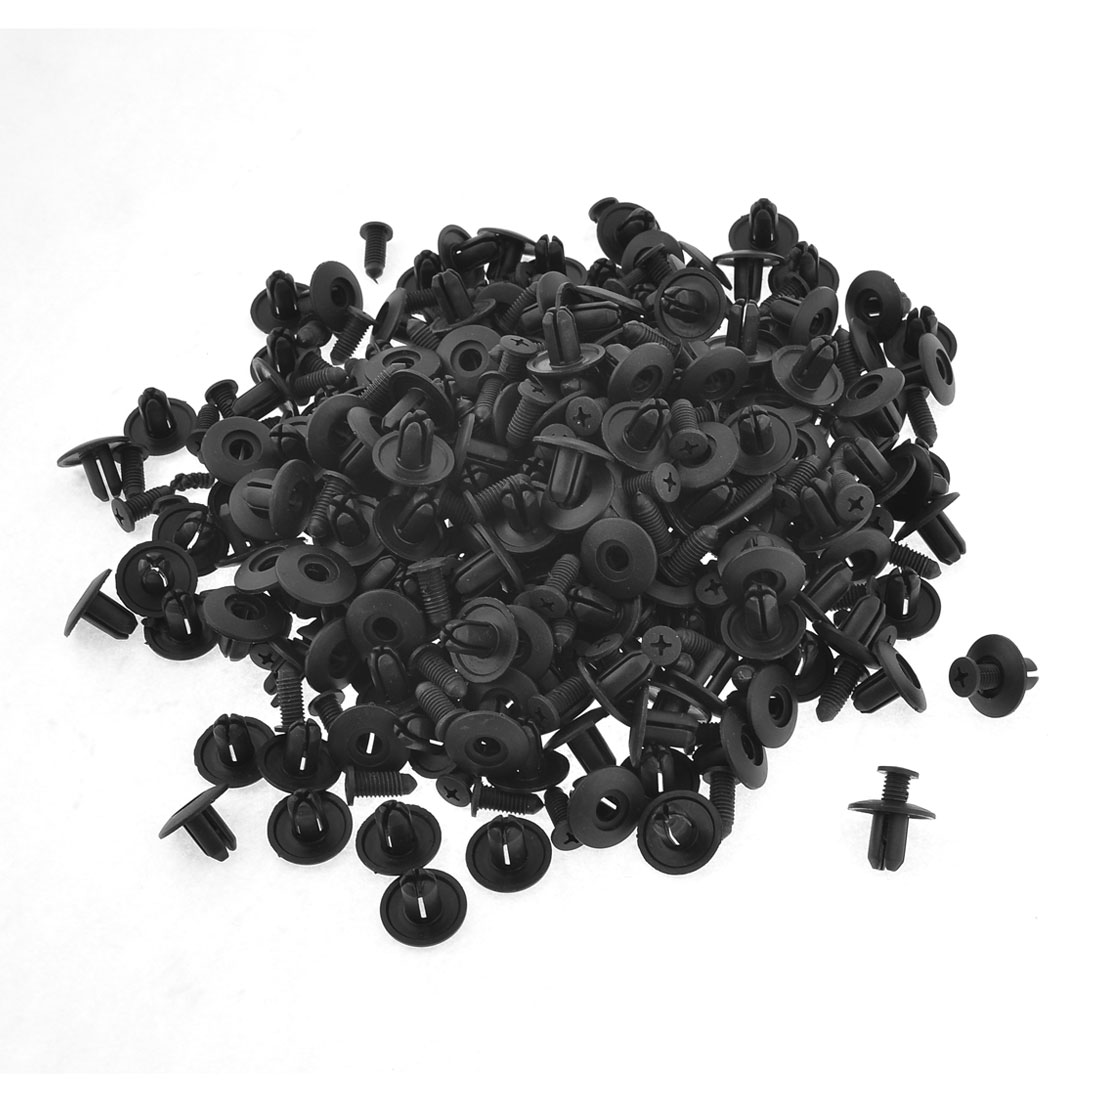 200 Pcs 8mm Dia Hole Black Fender Plastic Rivet Fastener for Auto Car